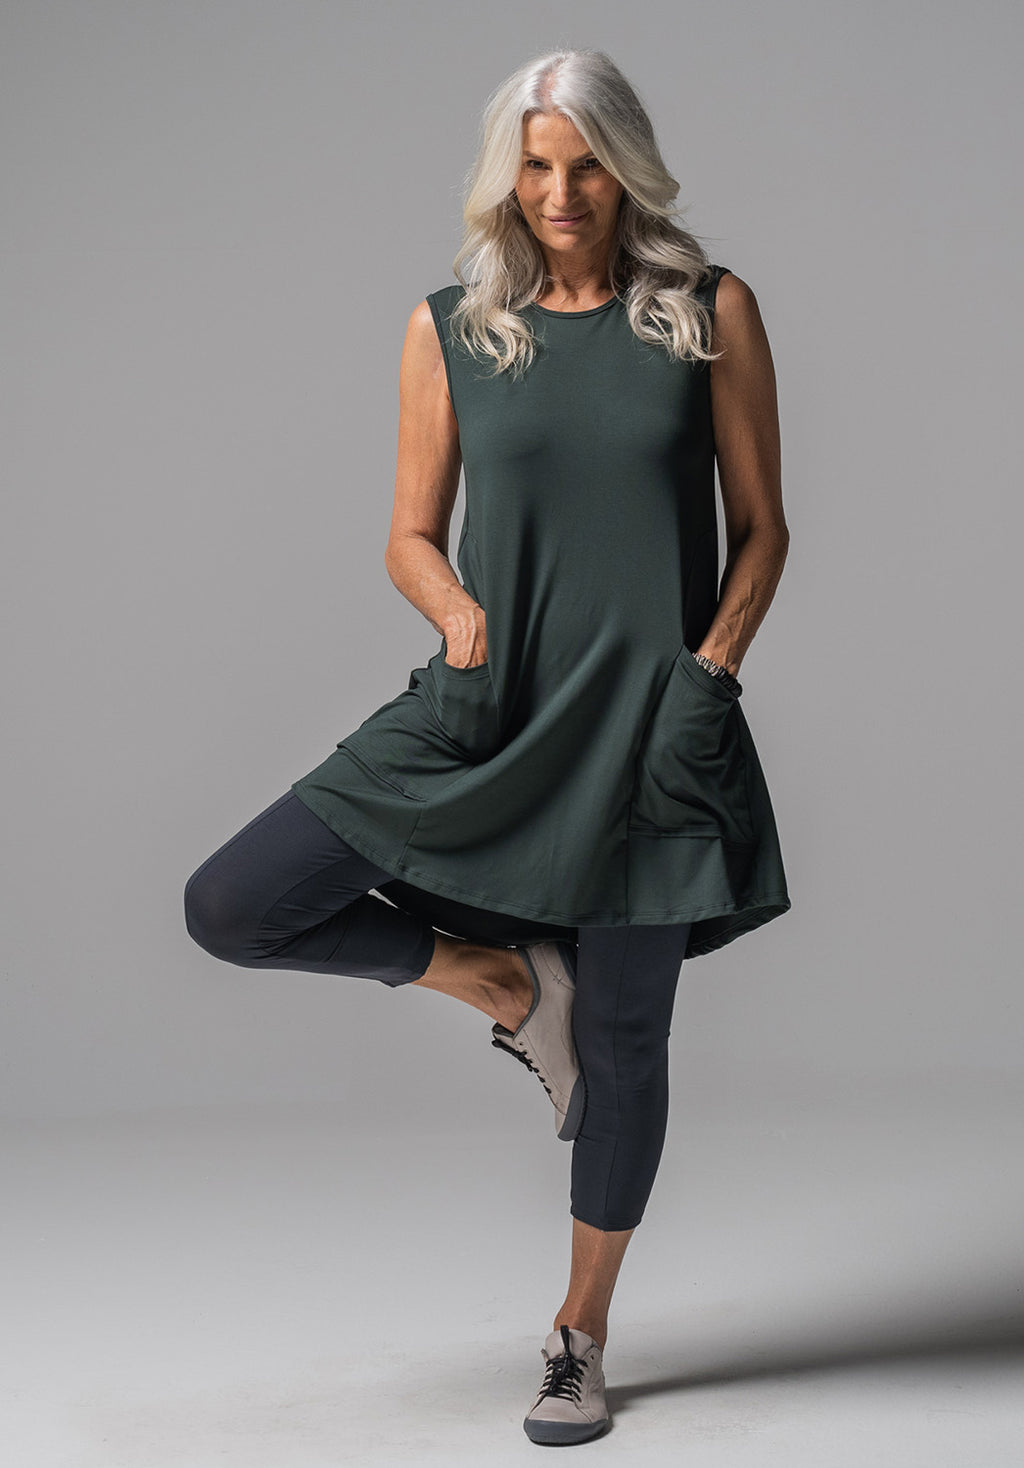 womens bamboo clothing online, bamboo tops online, bamboo dresses online 3